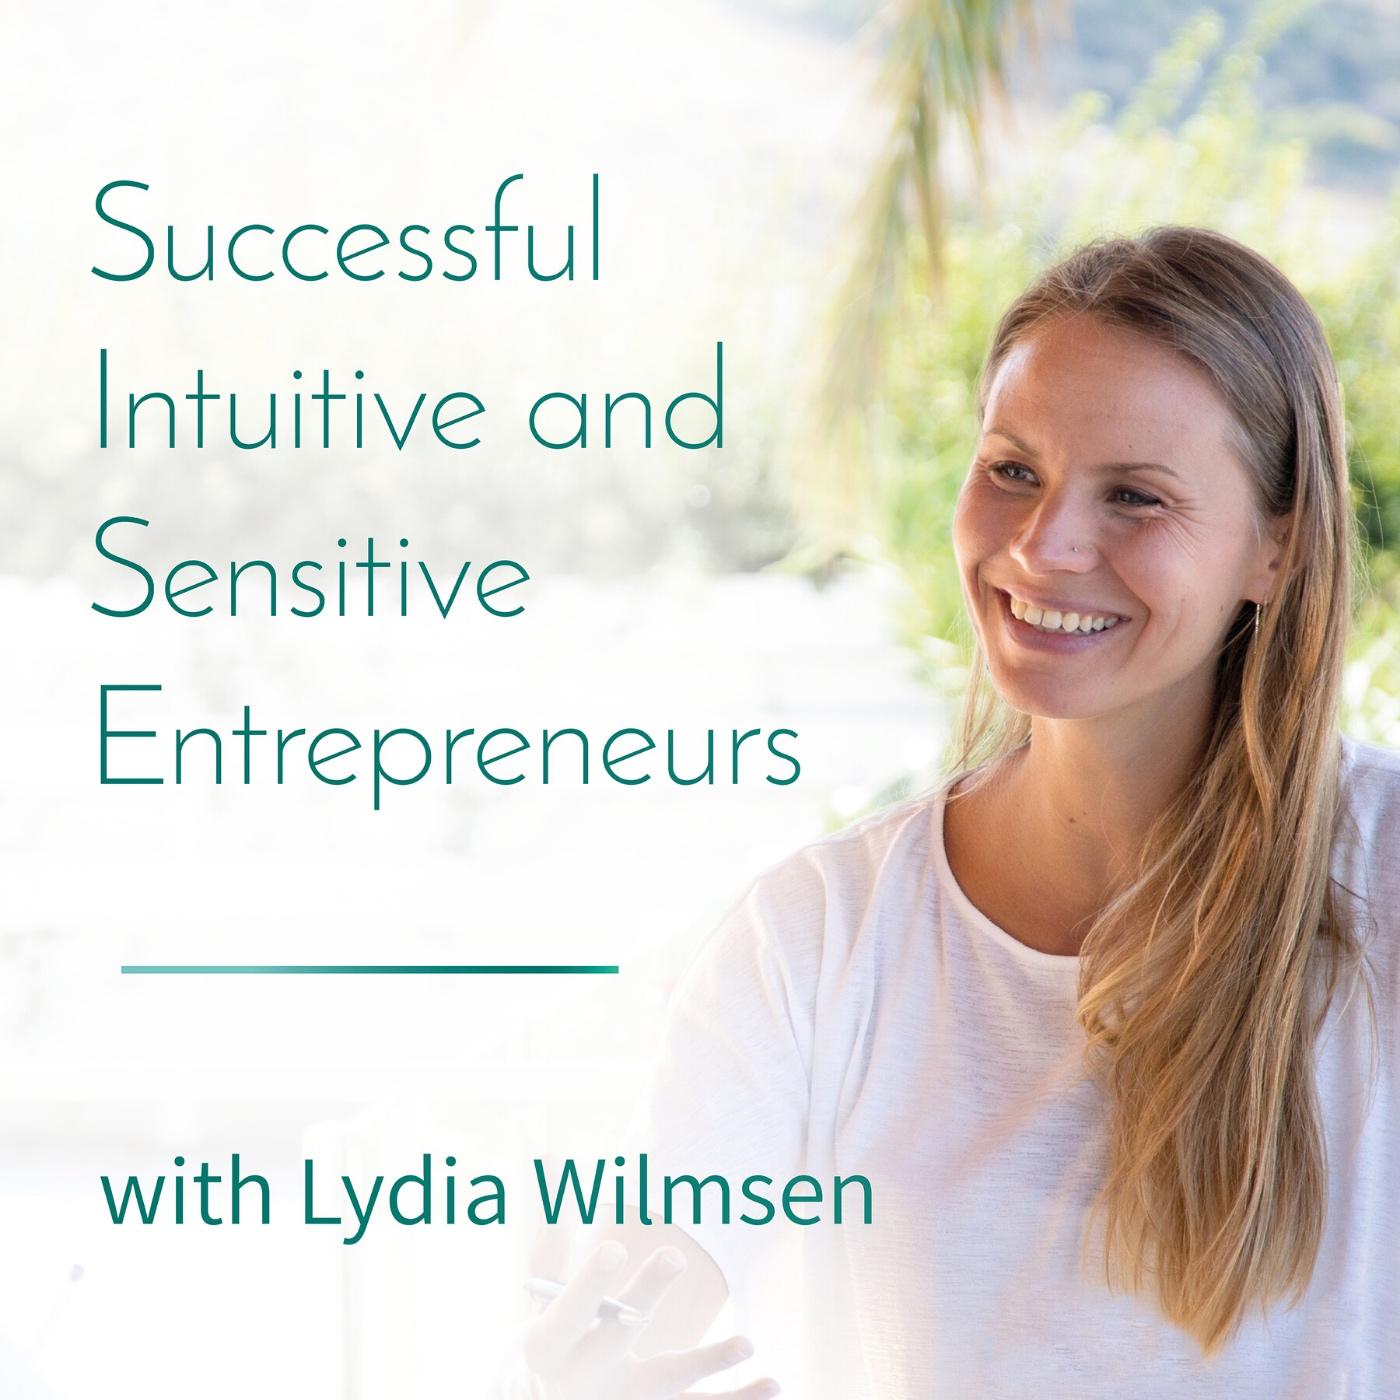 Artwork for podcast Successful, Intuitive and Sensitive Entrepreneurs